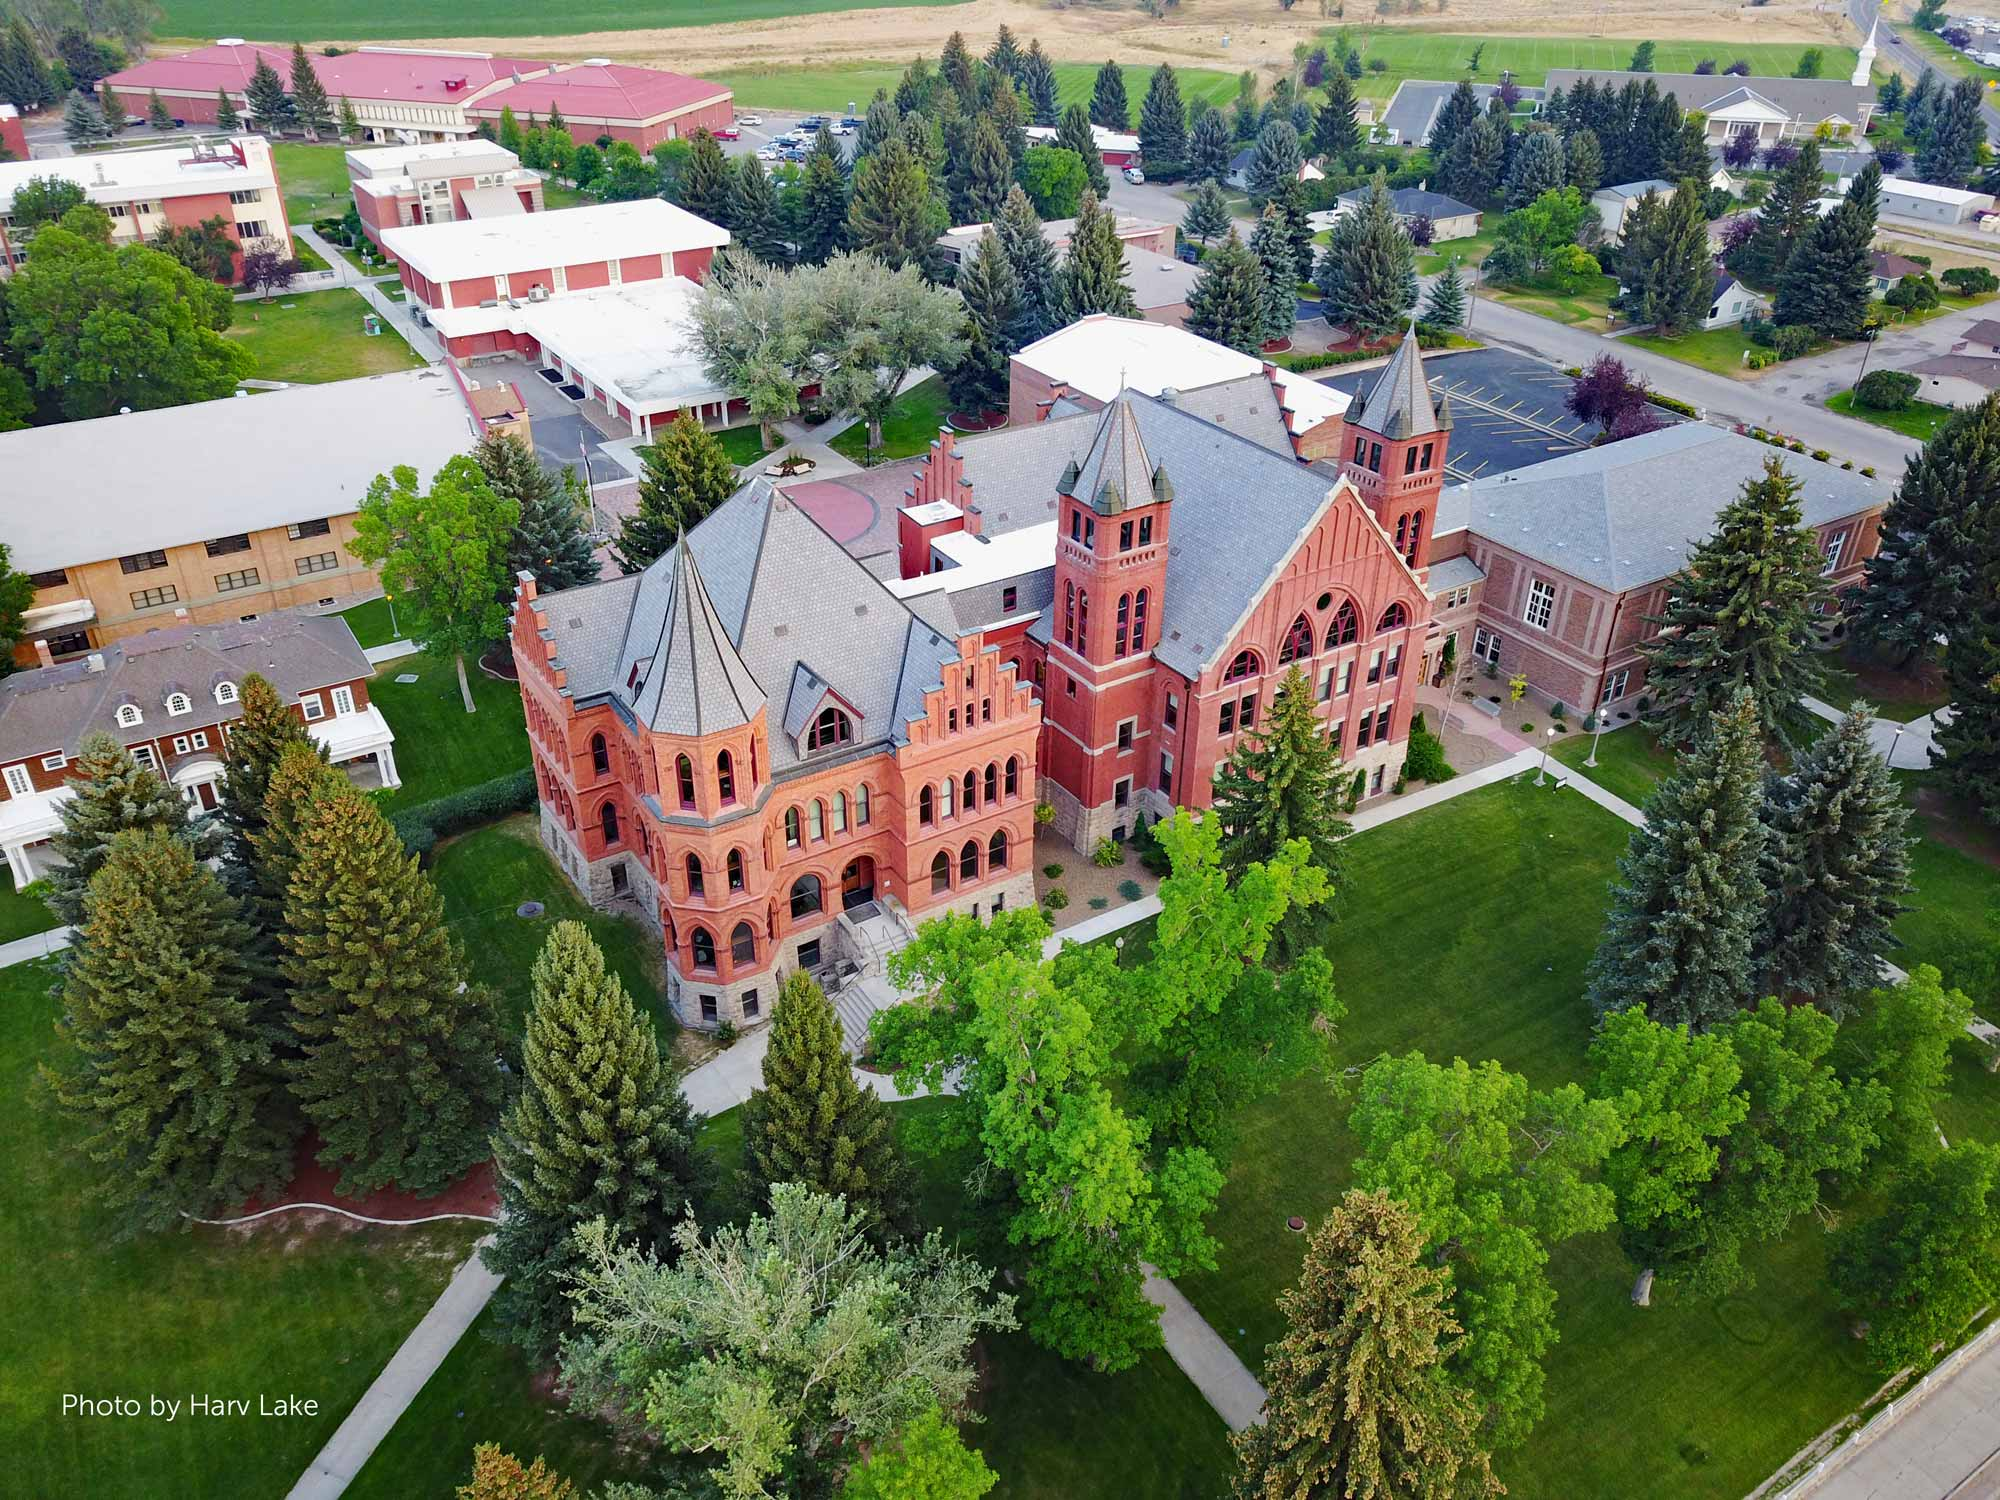 An aerial image of the University of Montana Western campus